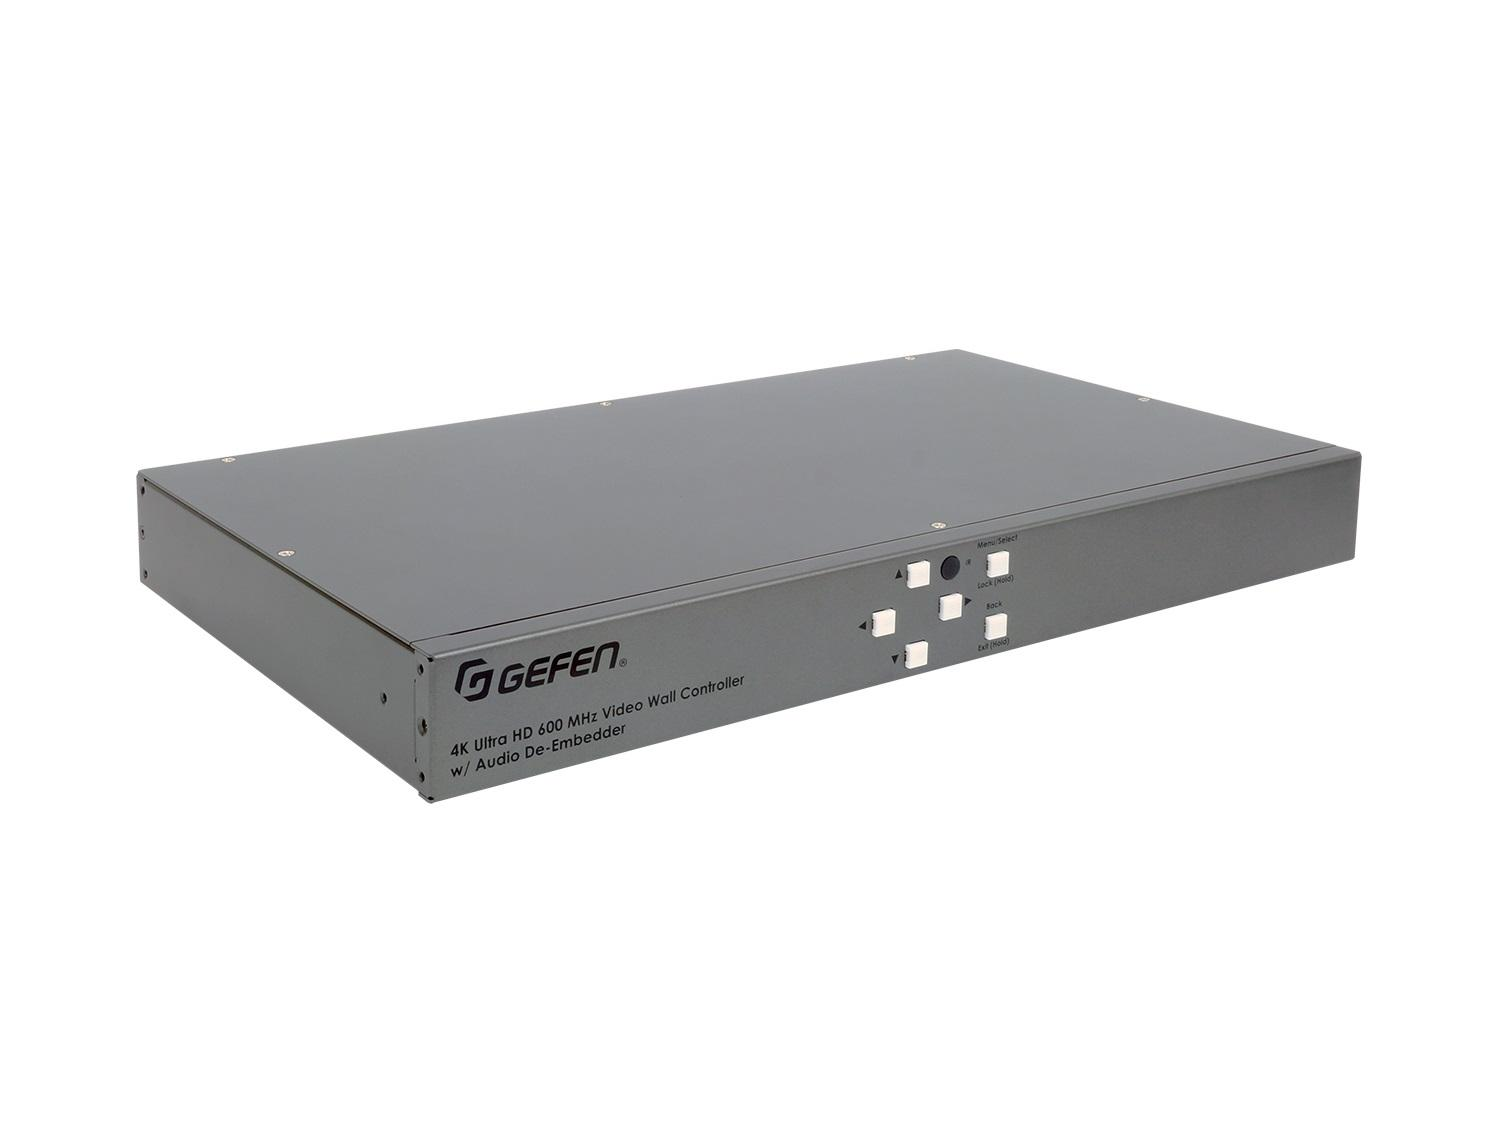 EXT-UHD600A-VWC-14 4K Ultra HD 600 MHz 1x4 Video Wall Controller with Audio De-Embedder by Gefen